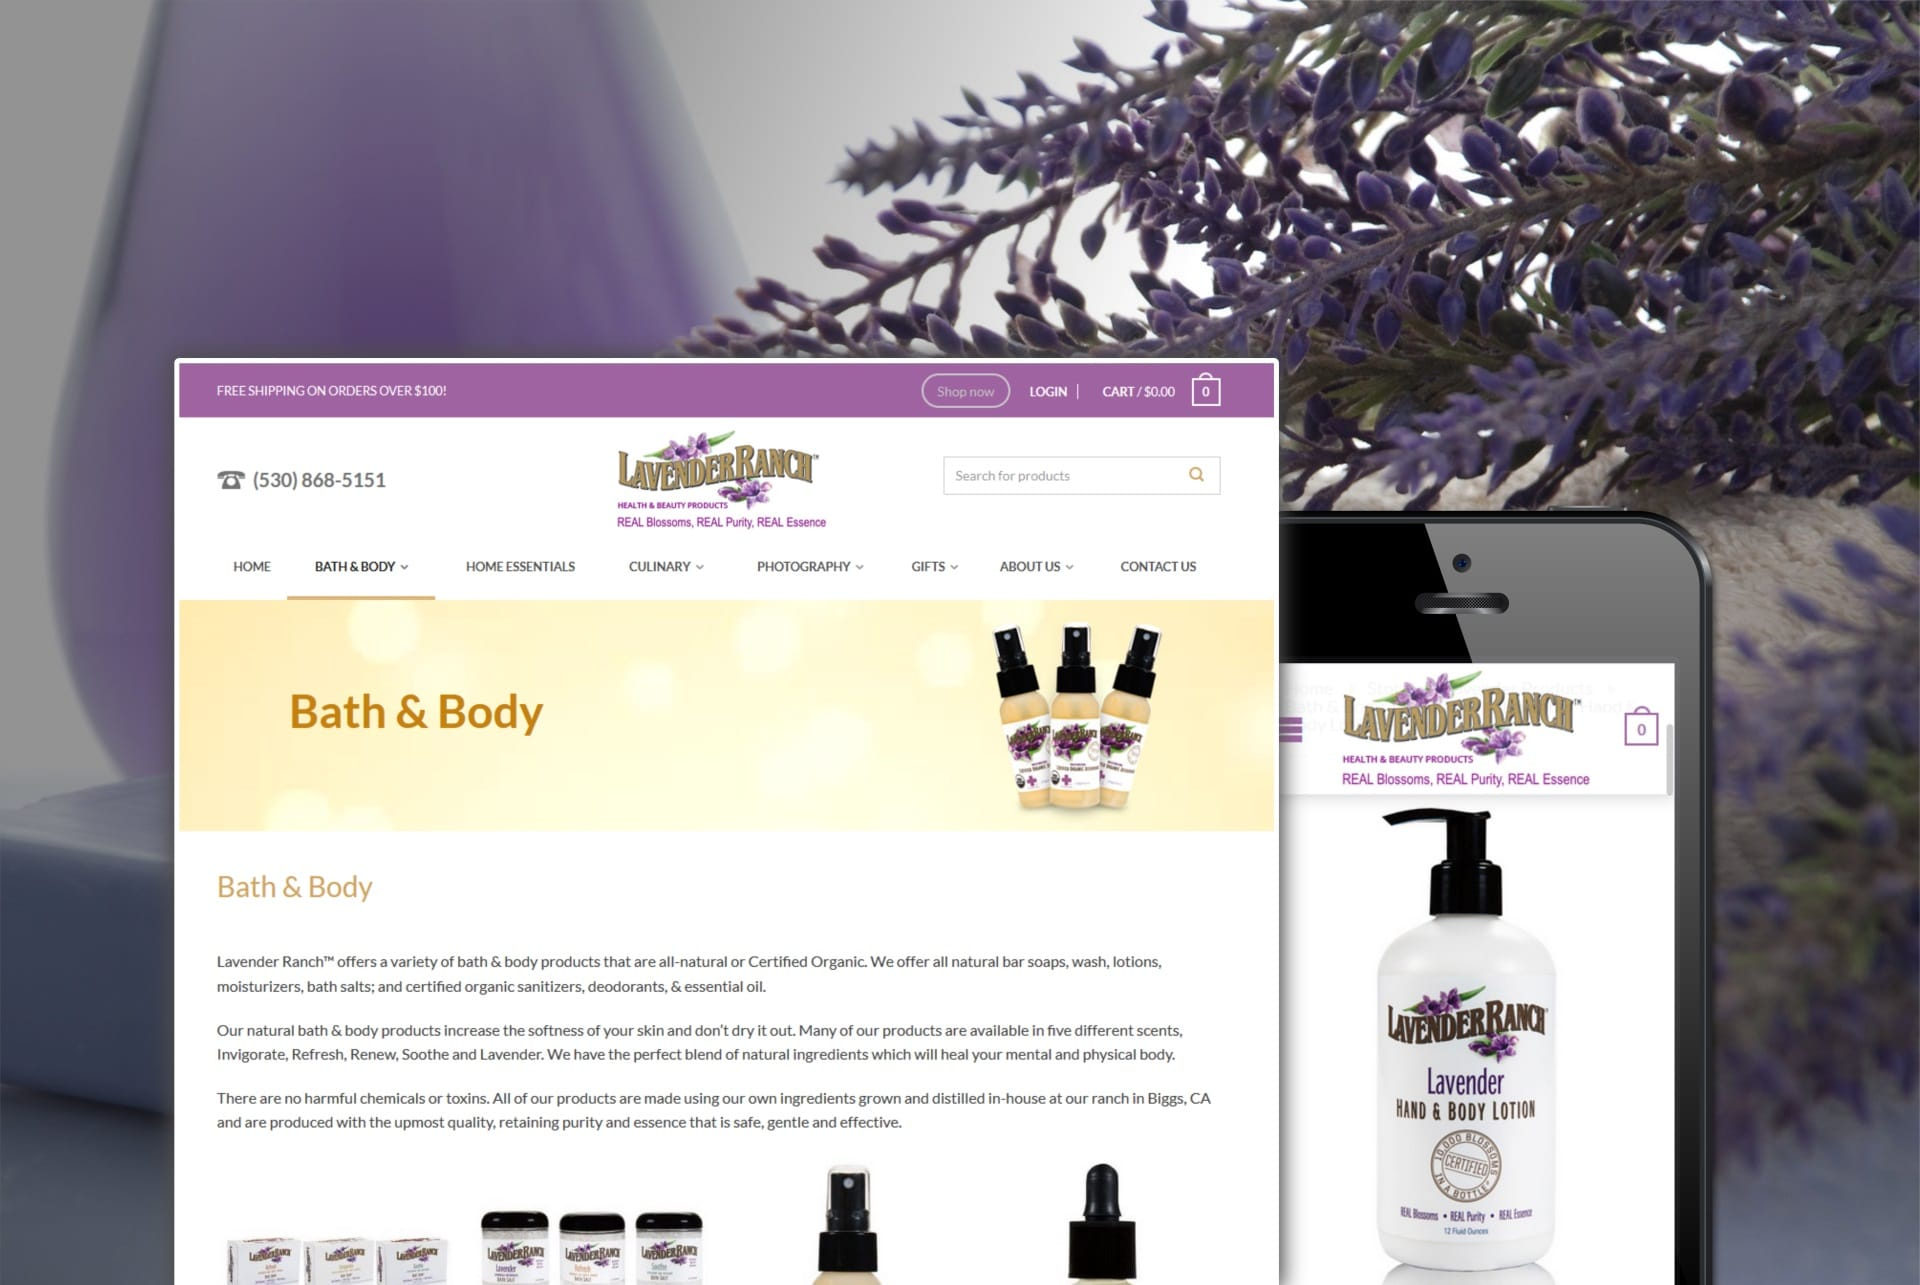 Lavender Ranch Products.